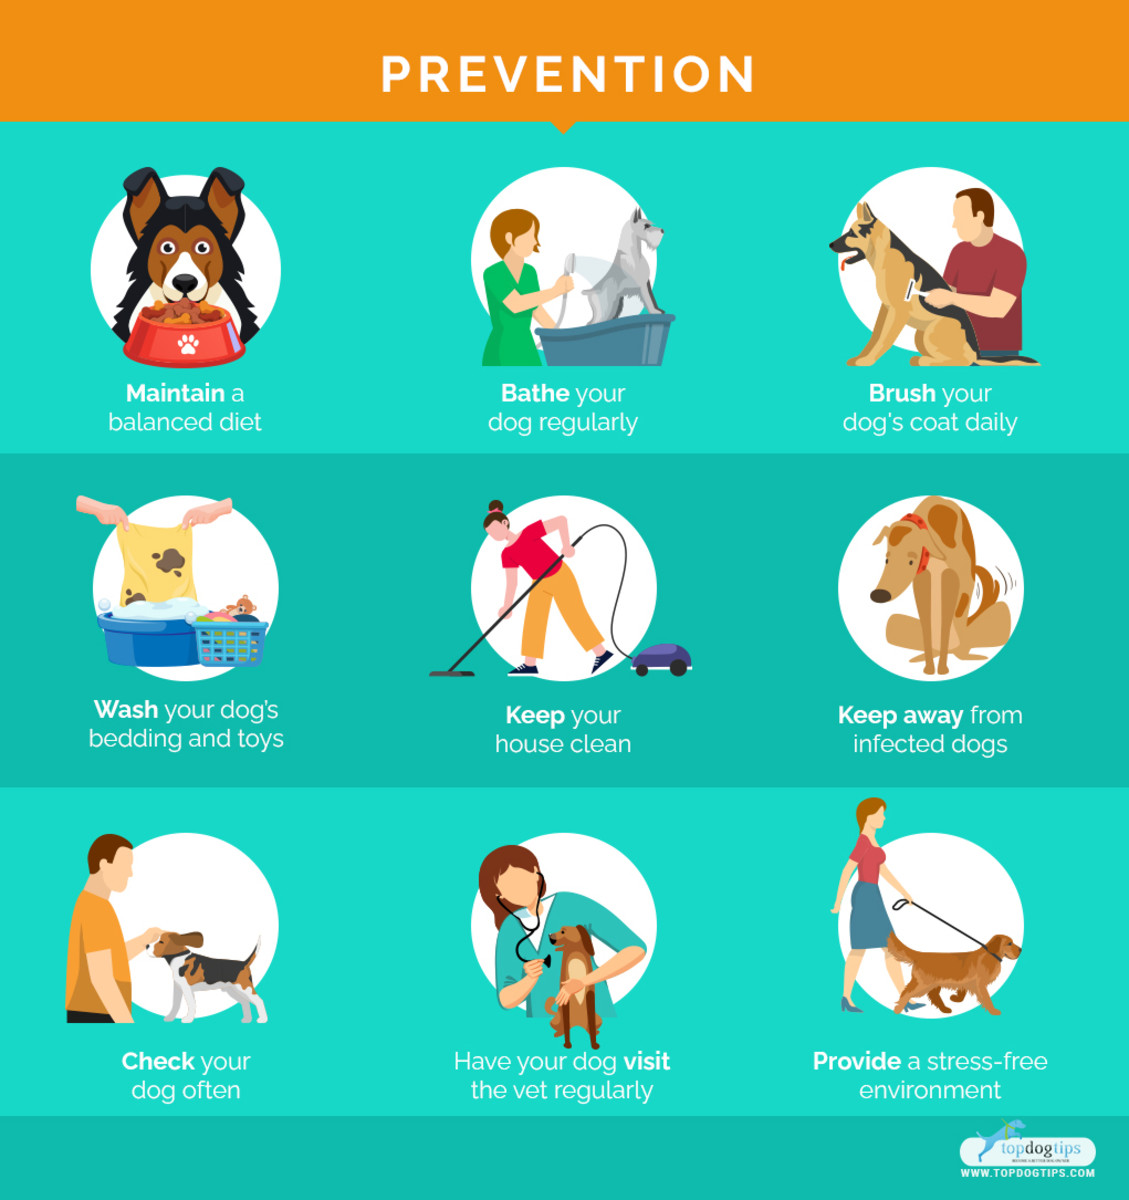 common-skin-diseases-in-older-dogs-and-how-to-prevent-them